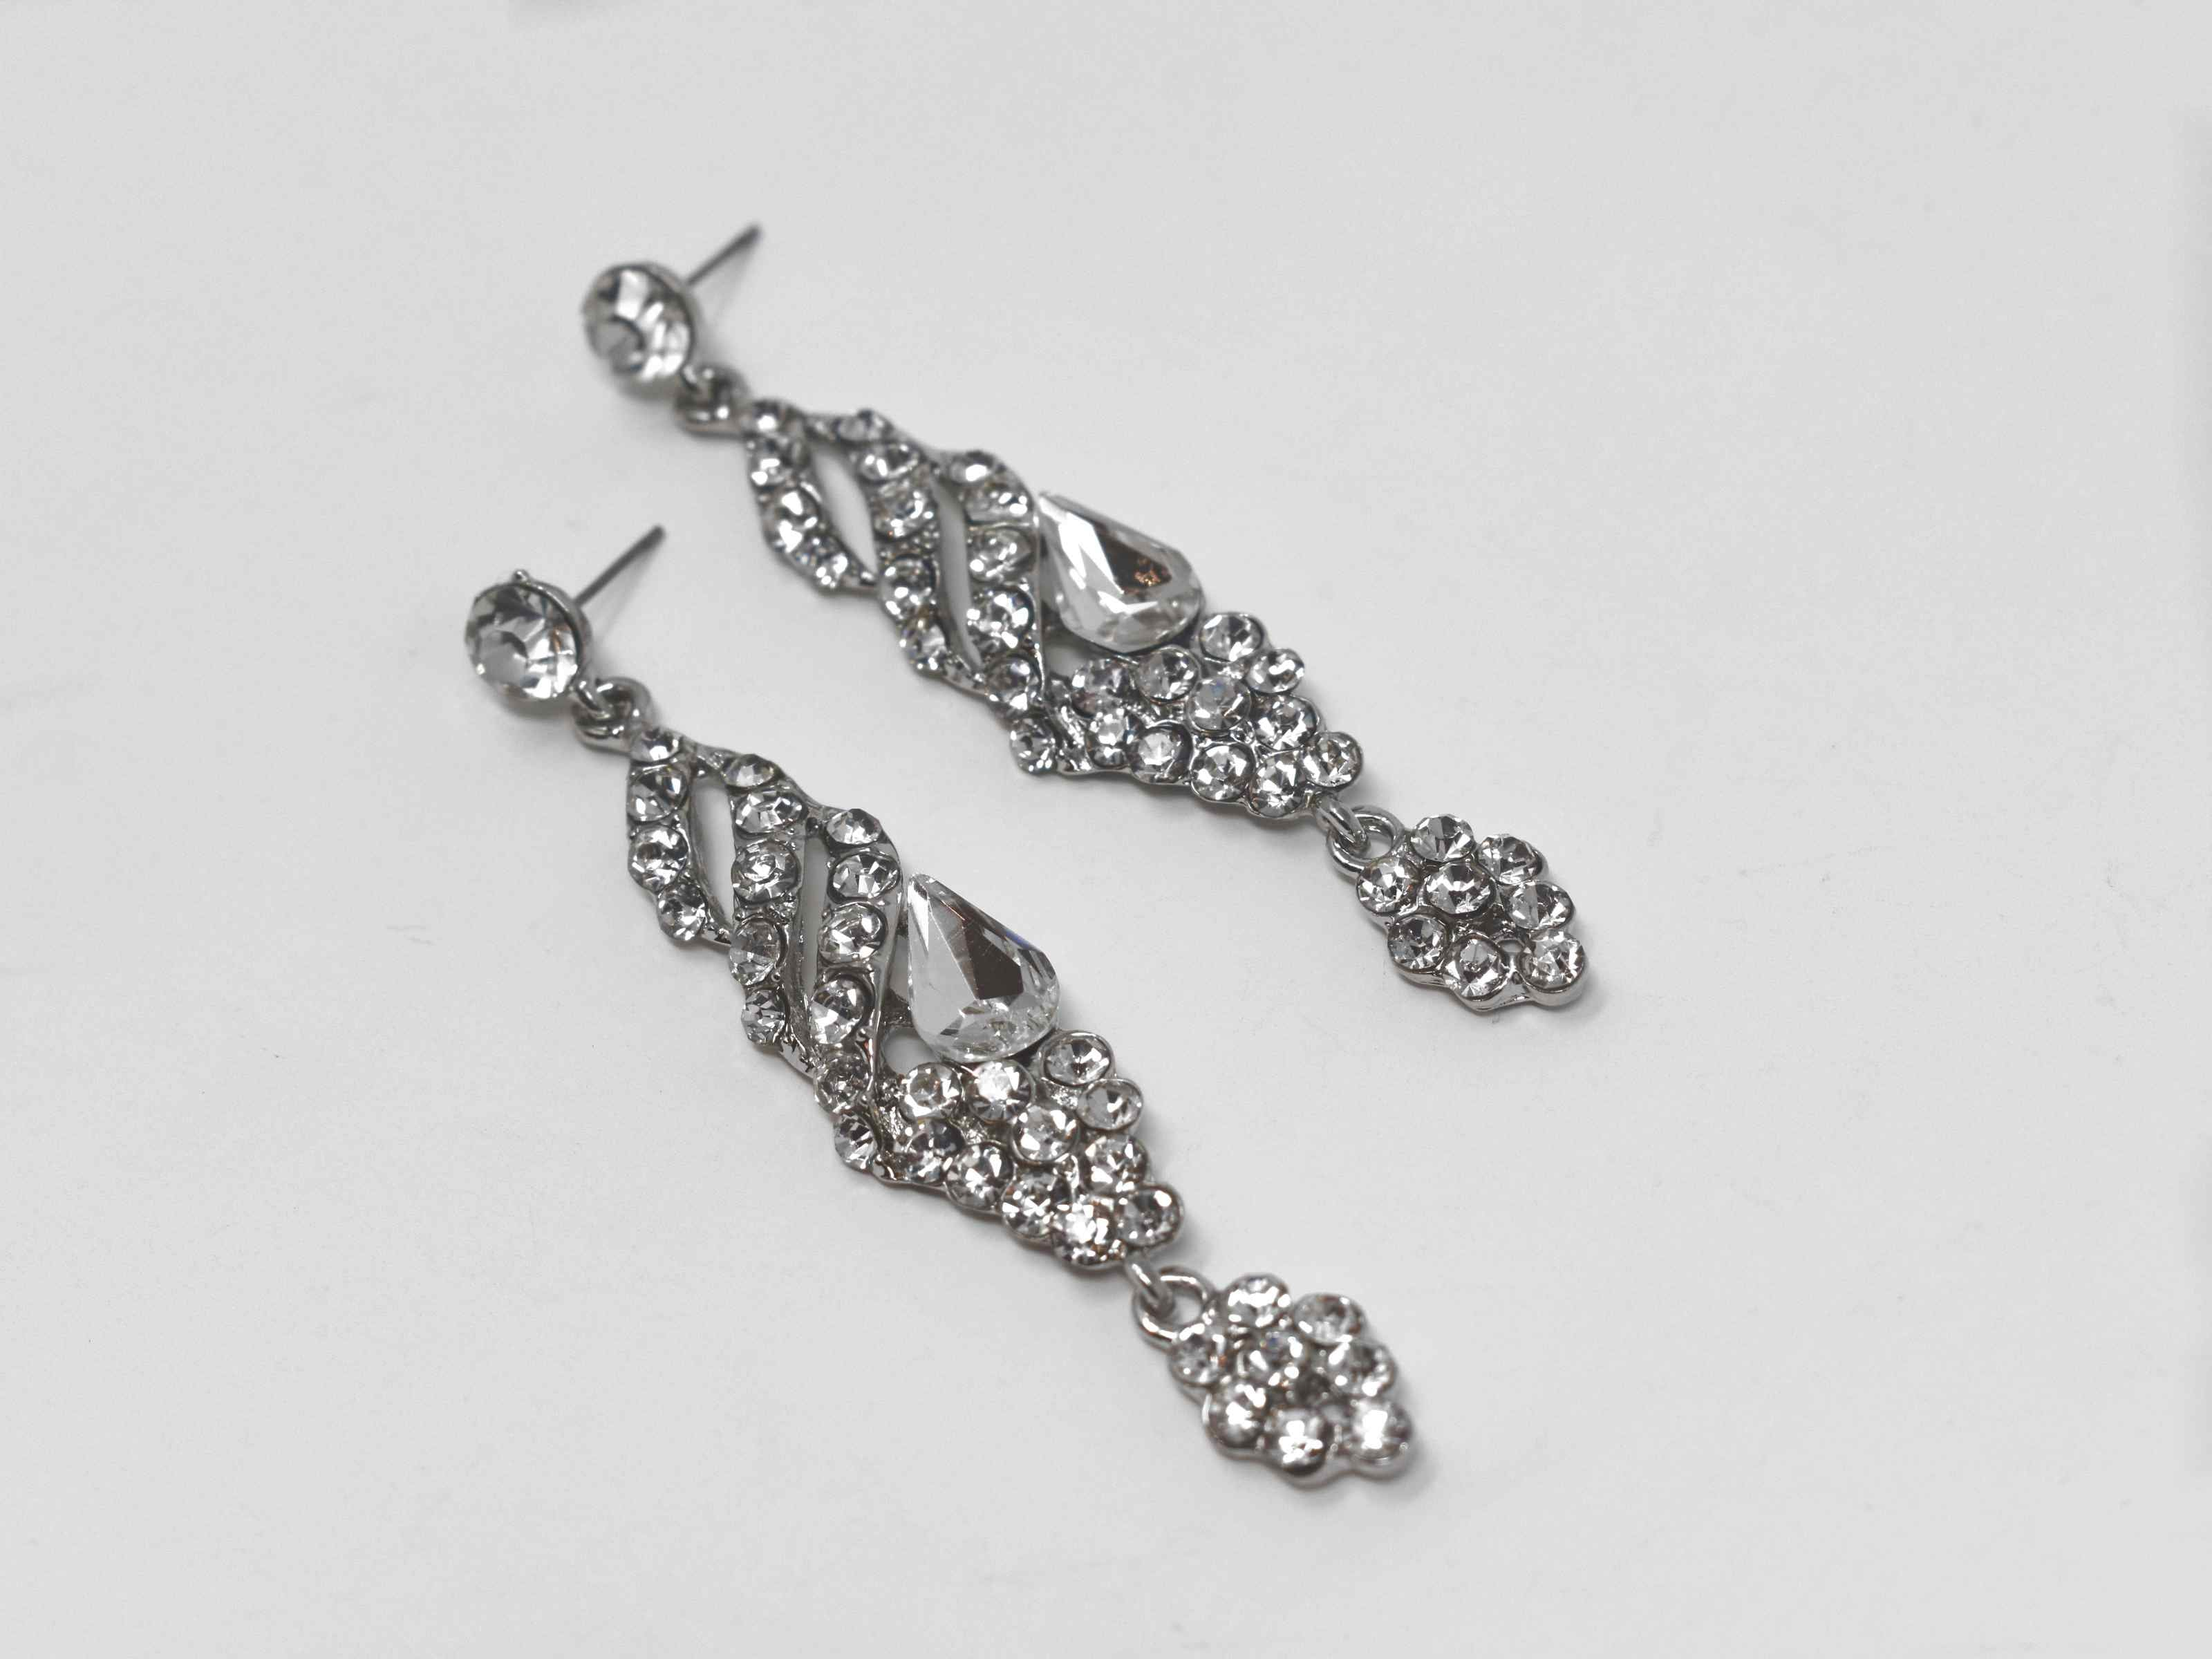 These formal silver earrings are a classic addition to your outfits. They are 3 inches in length and encrusted with clear stones.